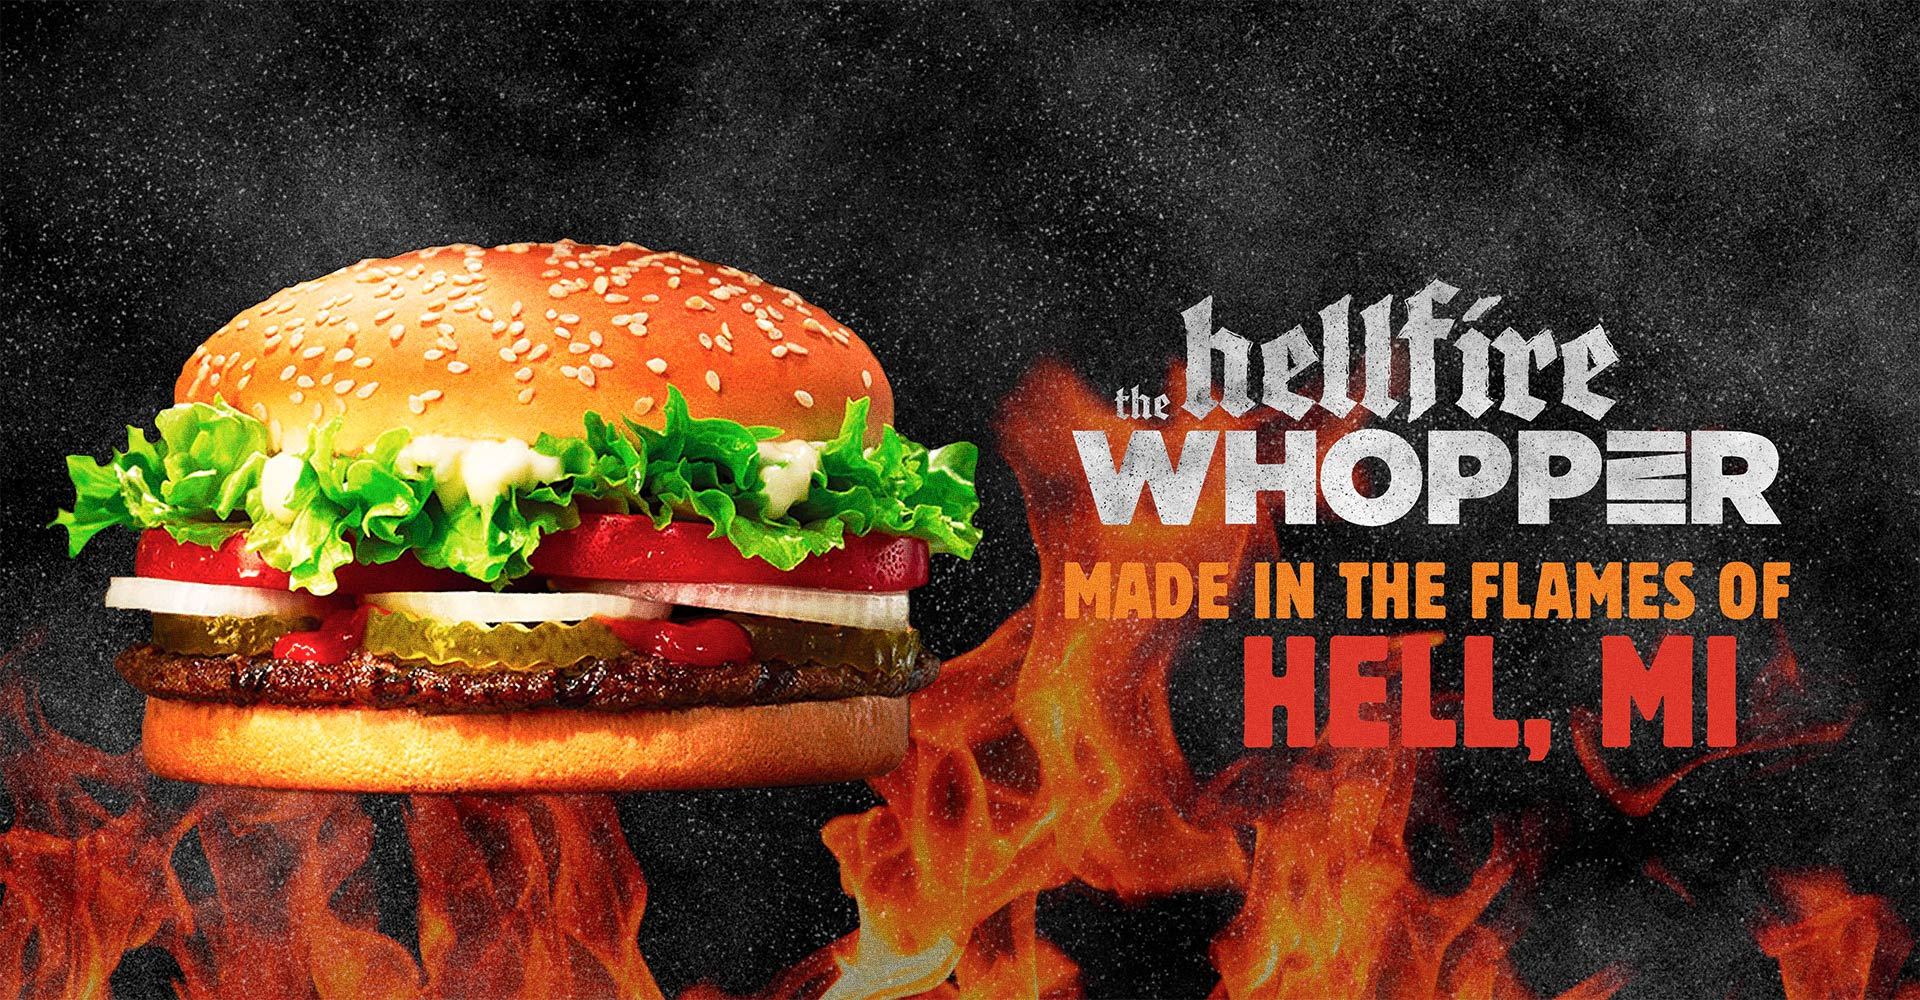 Burger King - Hellfire Whopper